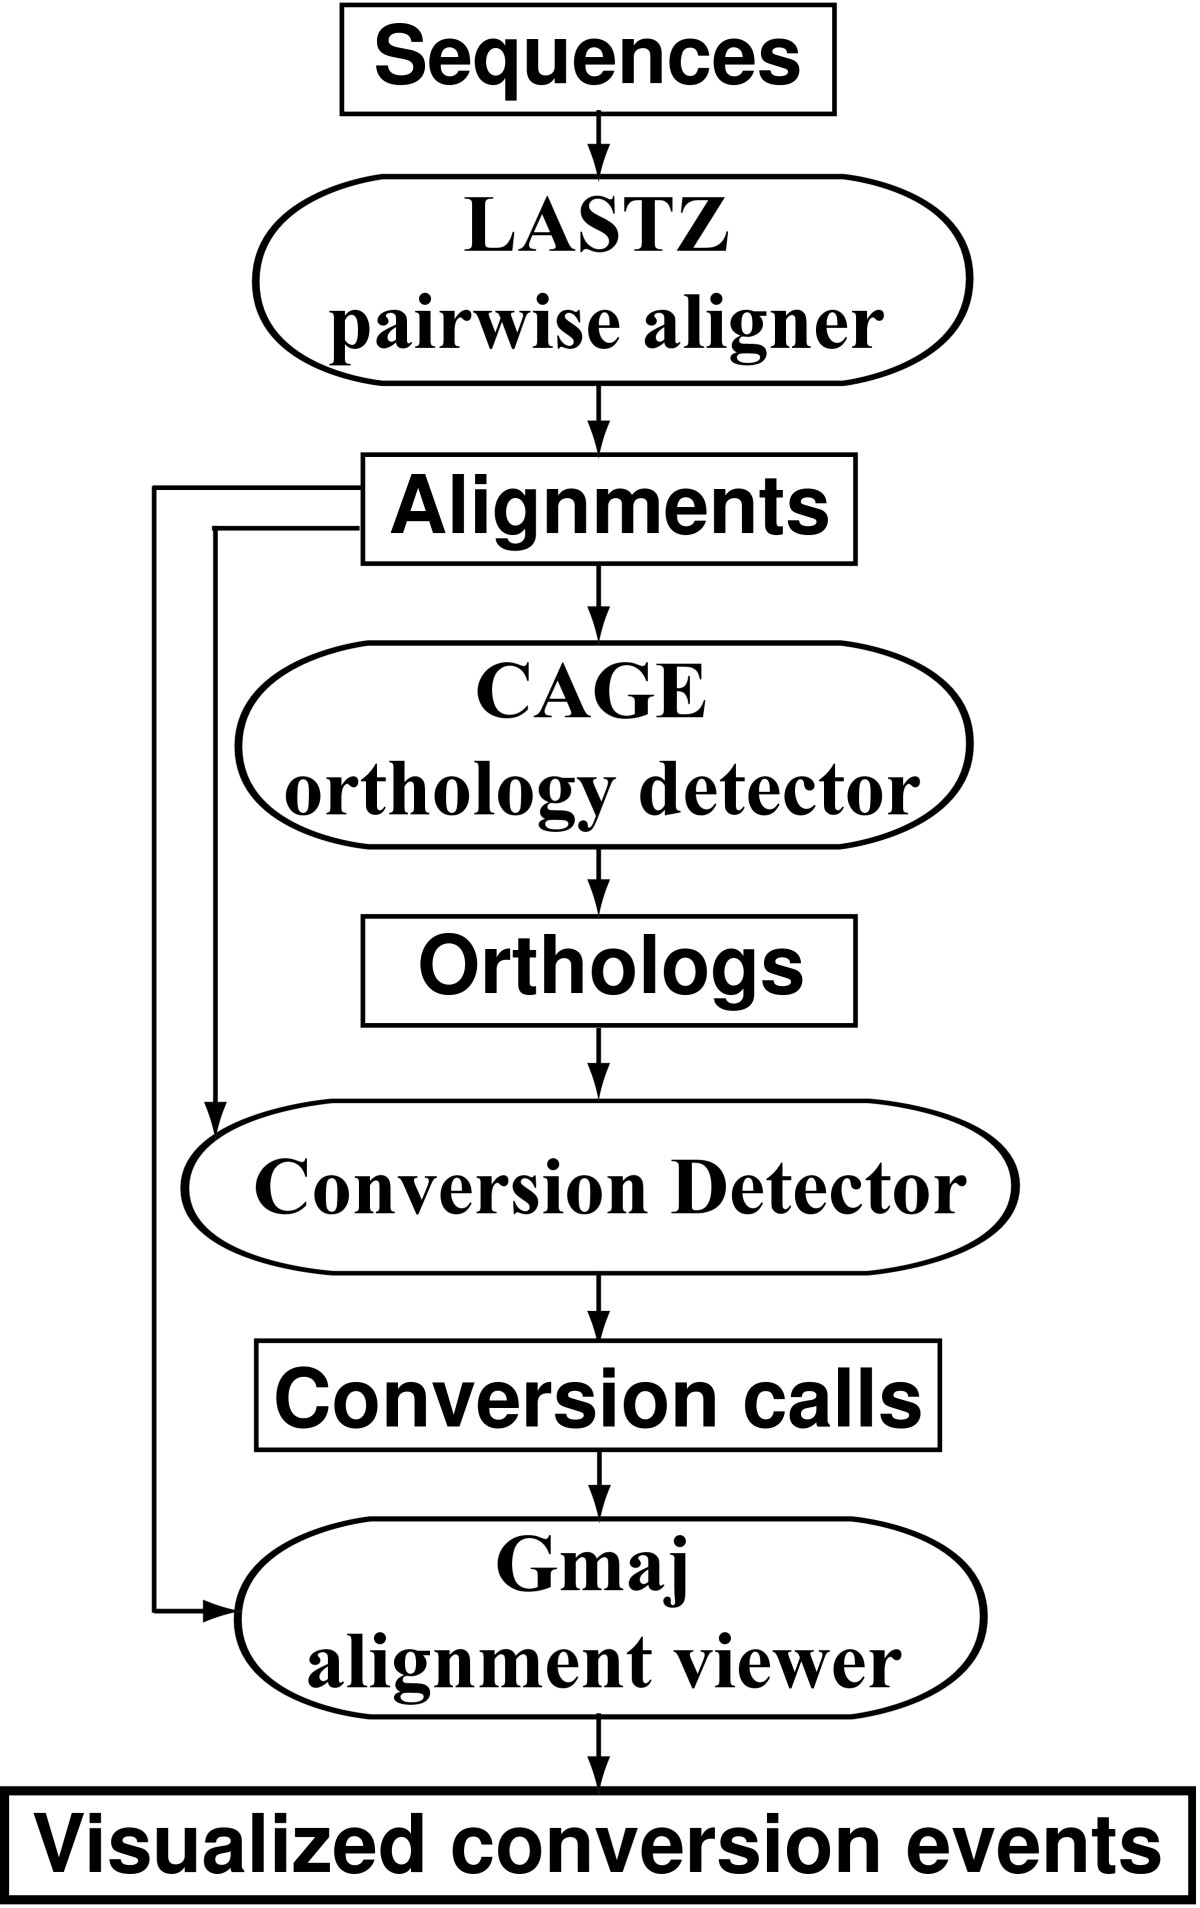 http://static-content.springer.com/image/art%3A10.1186%2F1471-2148-11-226/MediaObjects/12862_2011_1829_Fig3_HTML.jpg